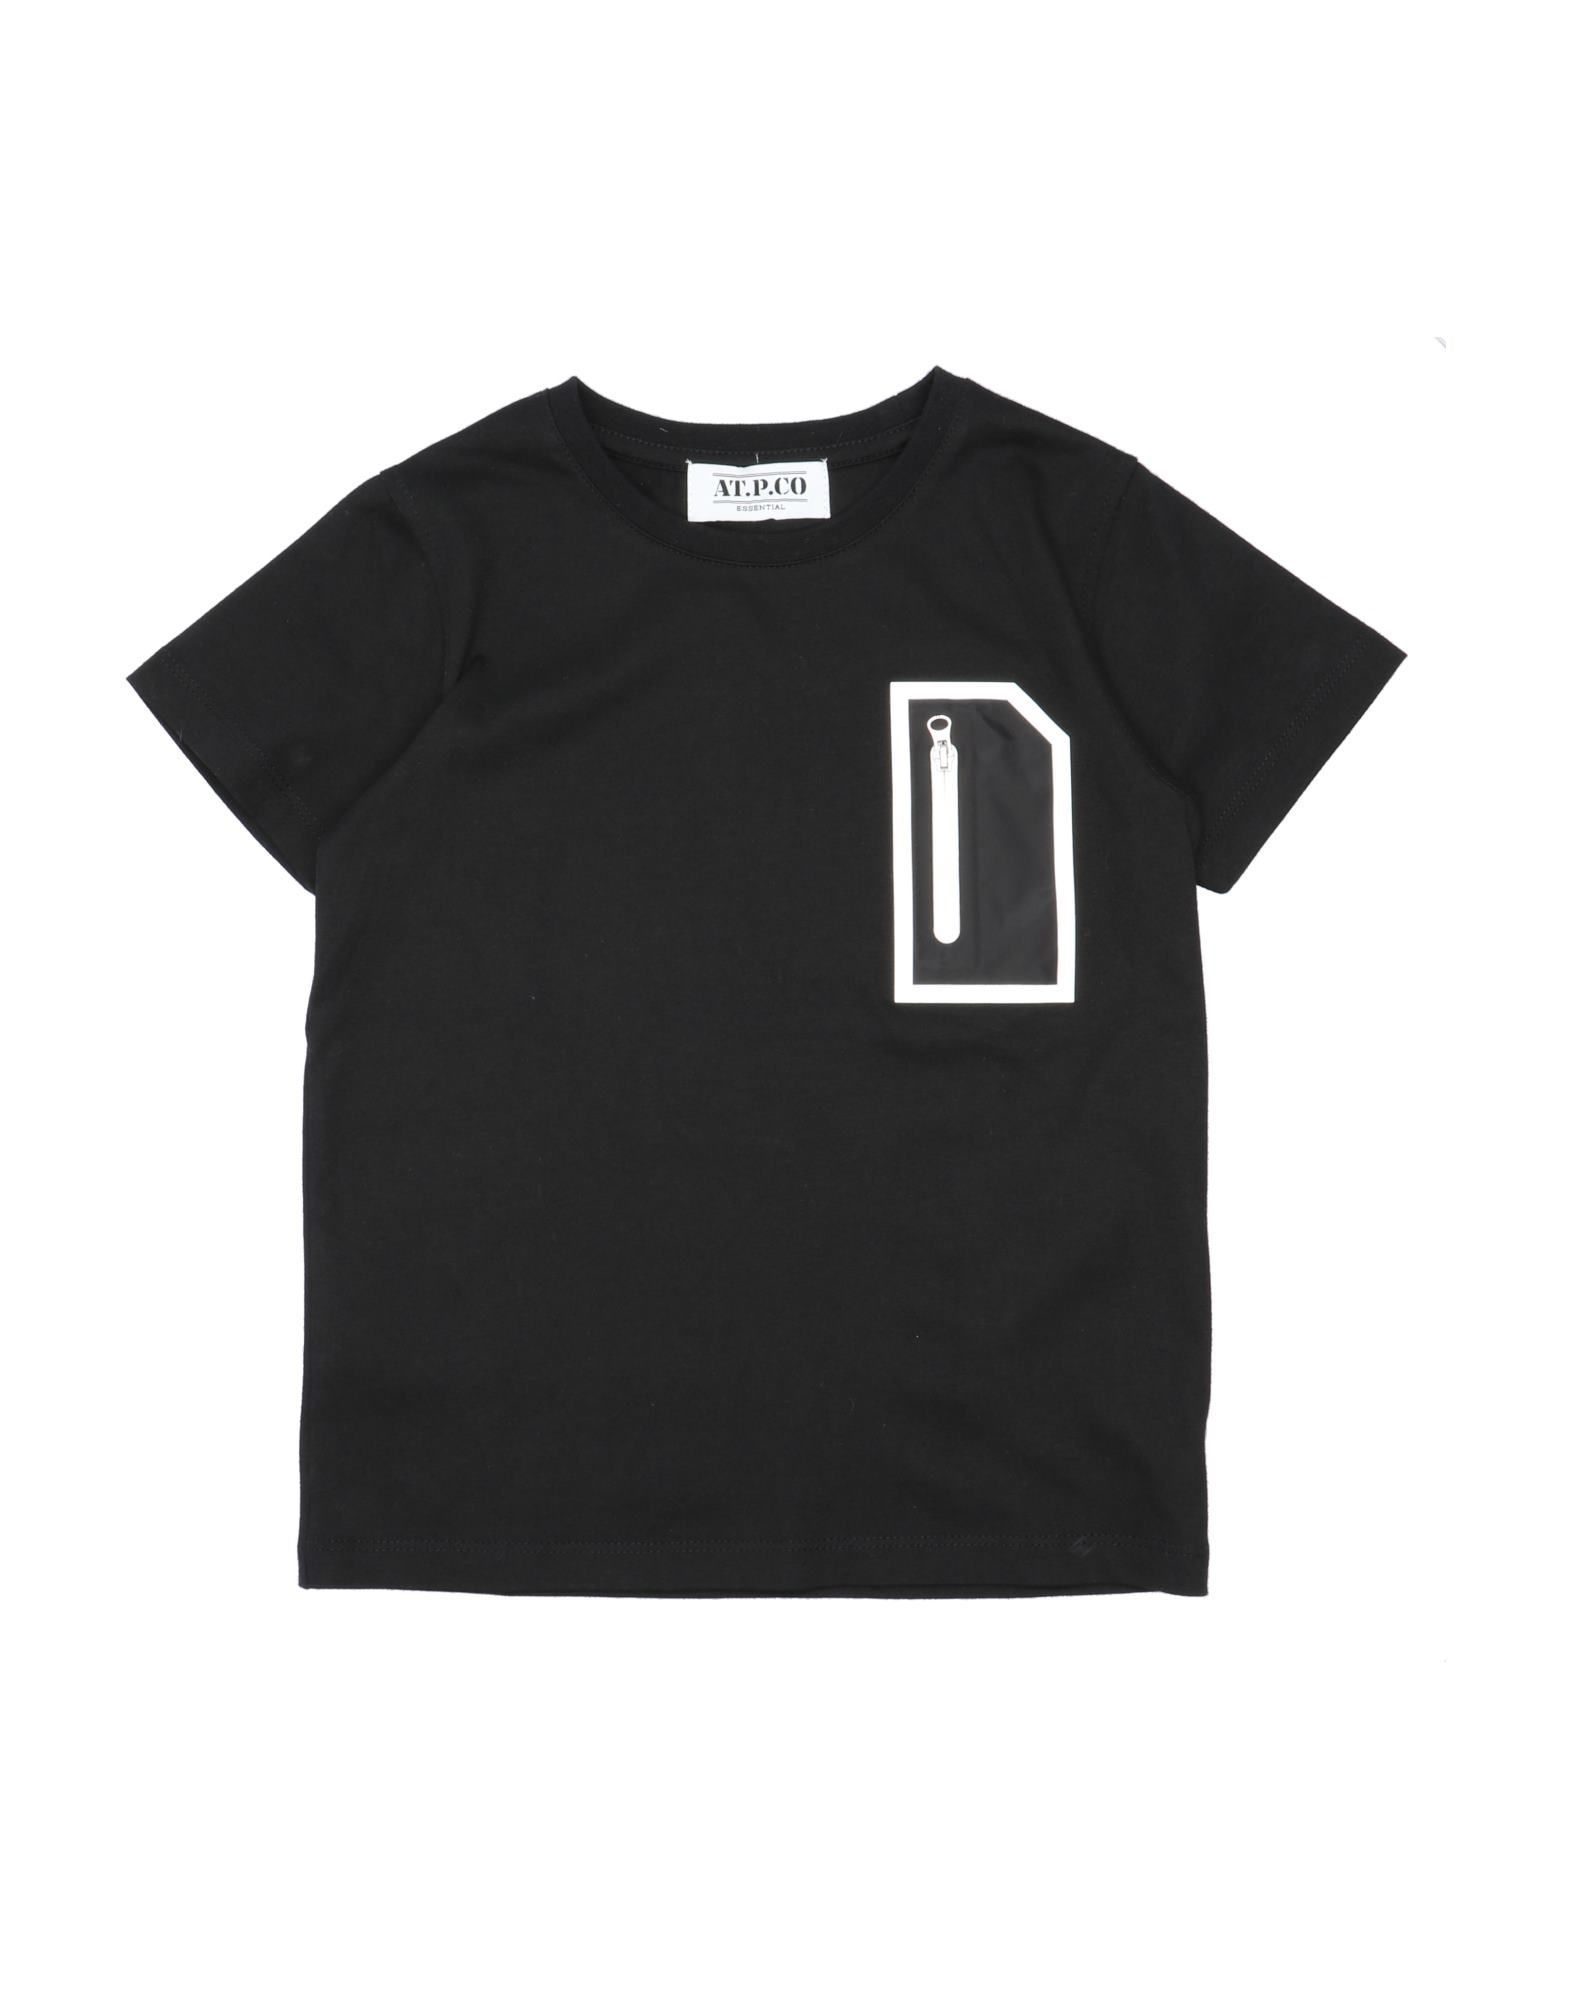 At.p.co Kids' T-shirts In Black